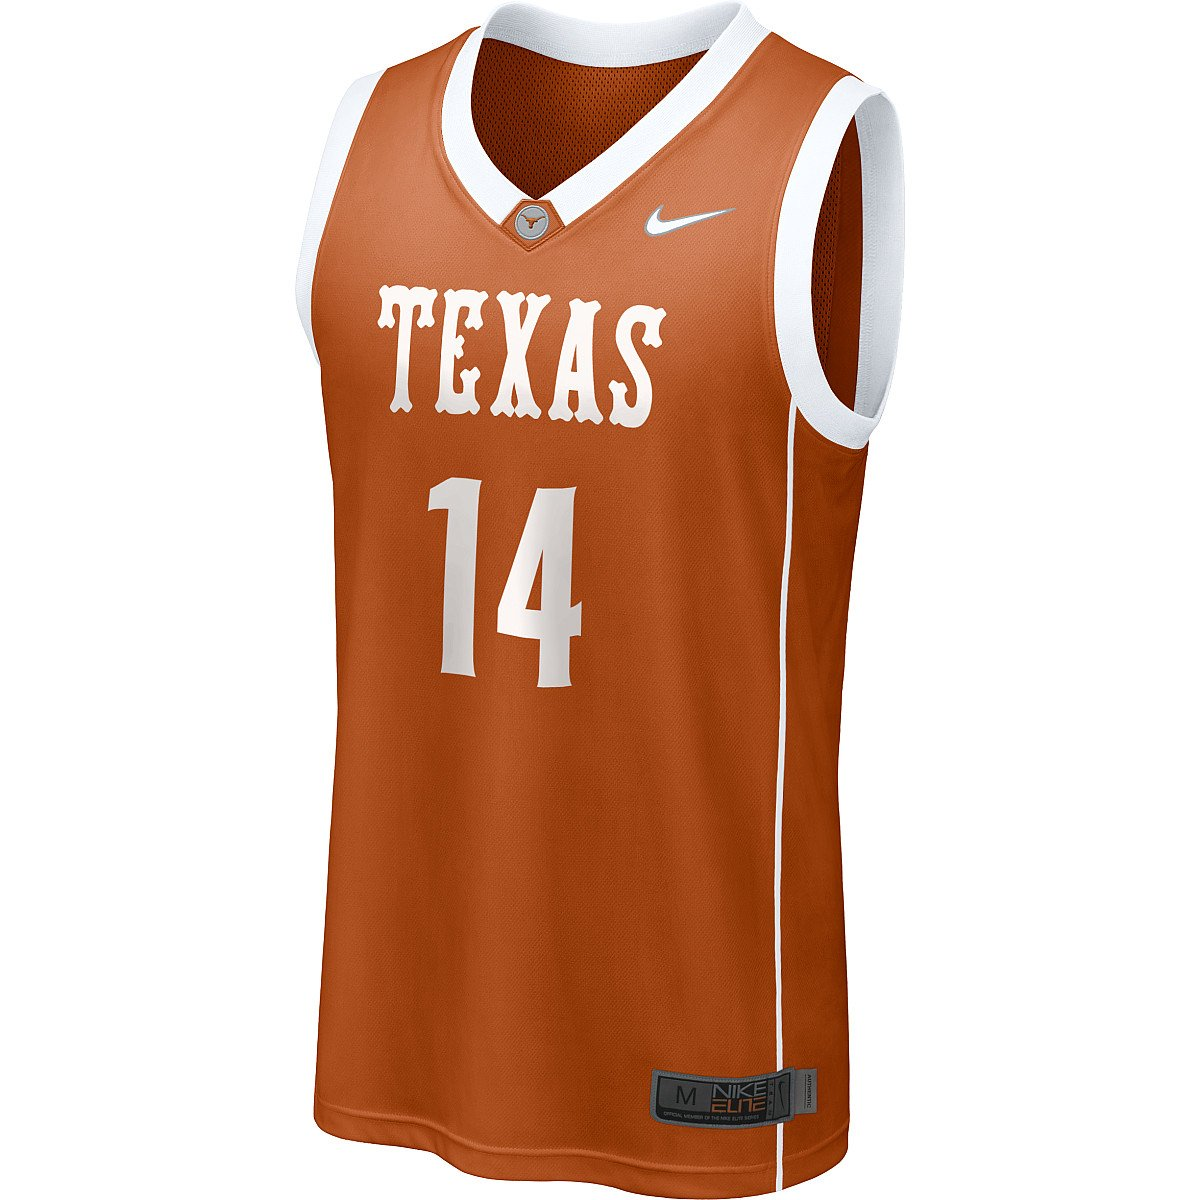 6fd23f7d391 60%OFF Nike Texas Longhorns Replica Basketball Jersey 2 XLarge ...